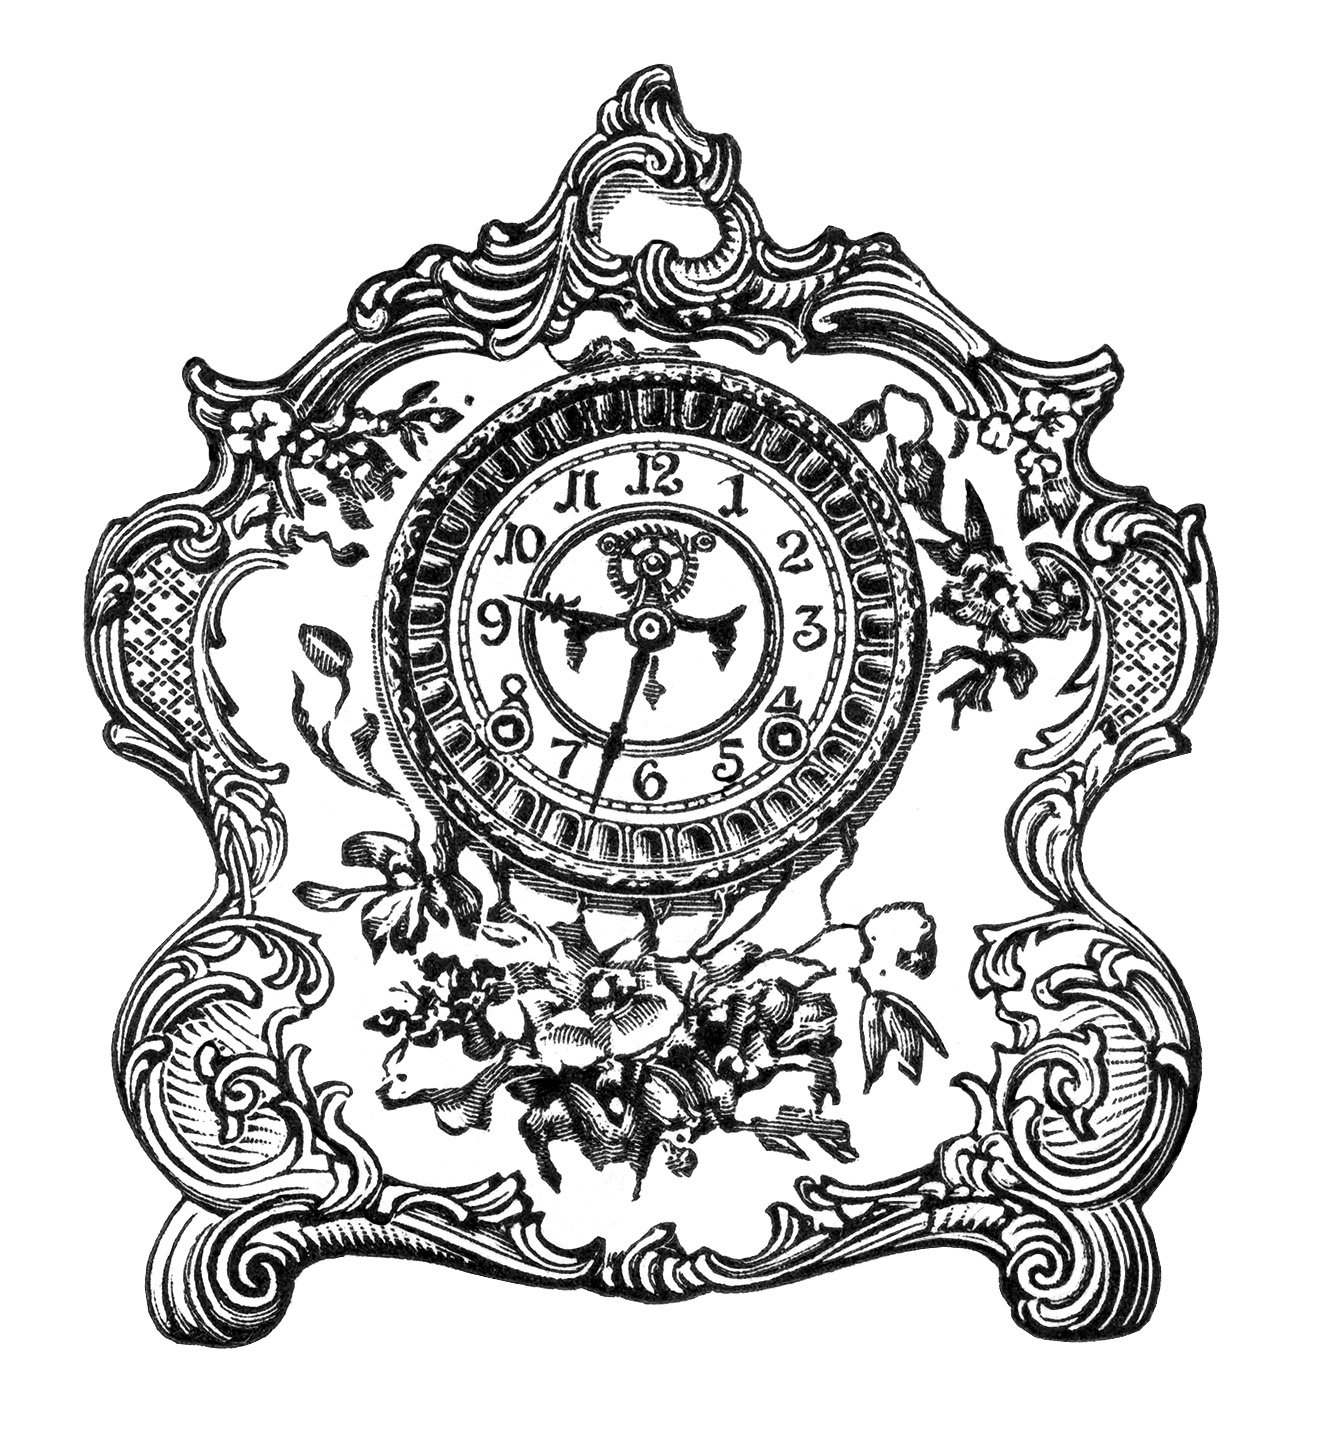 vintage clock clip art, black and white graphics, old fashioned clock image, Victorian mantle clock, antique porcelain clock illustration